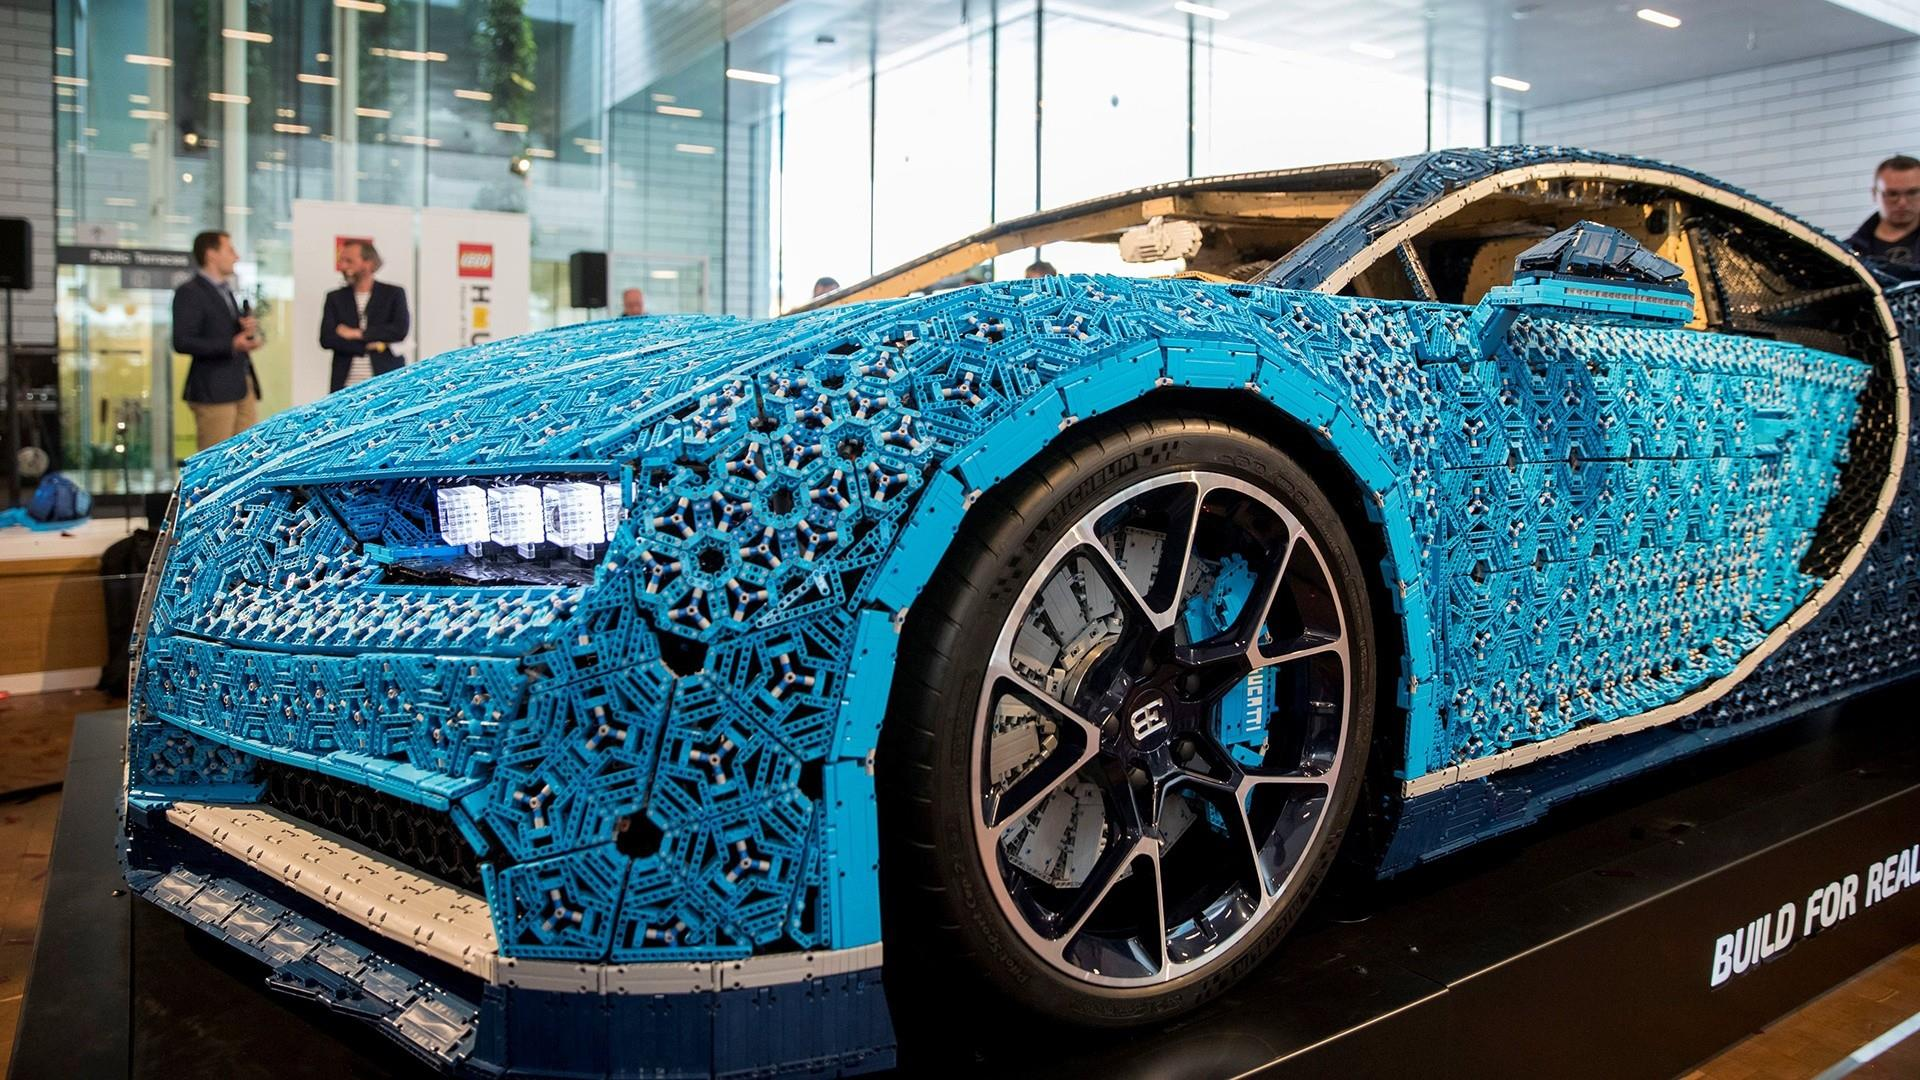 See the working Bugatti made entirely of Legos